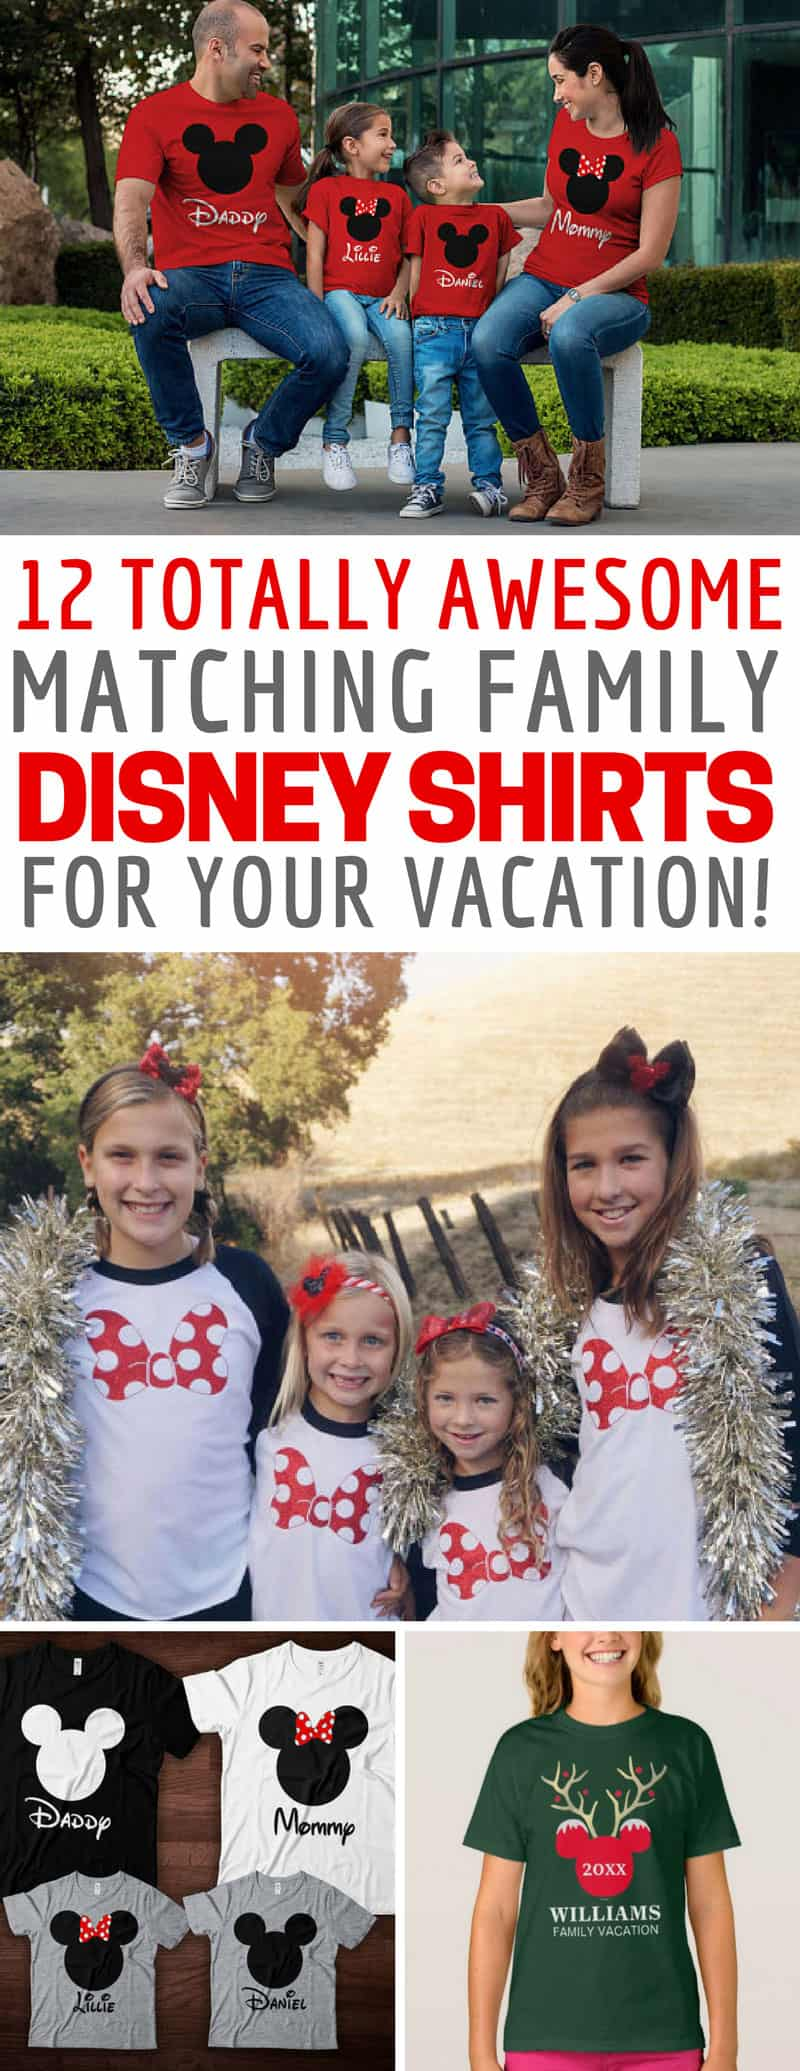 Loving these matching family Disney shirts - our vacation photos will be so cute! Thanks for sharing!